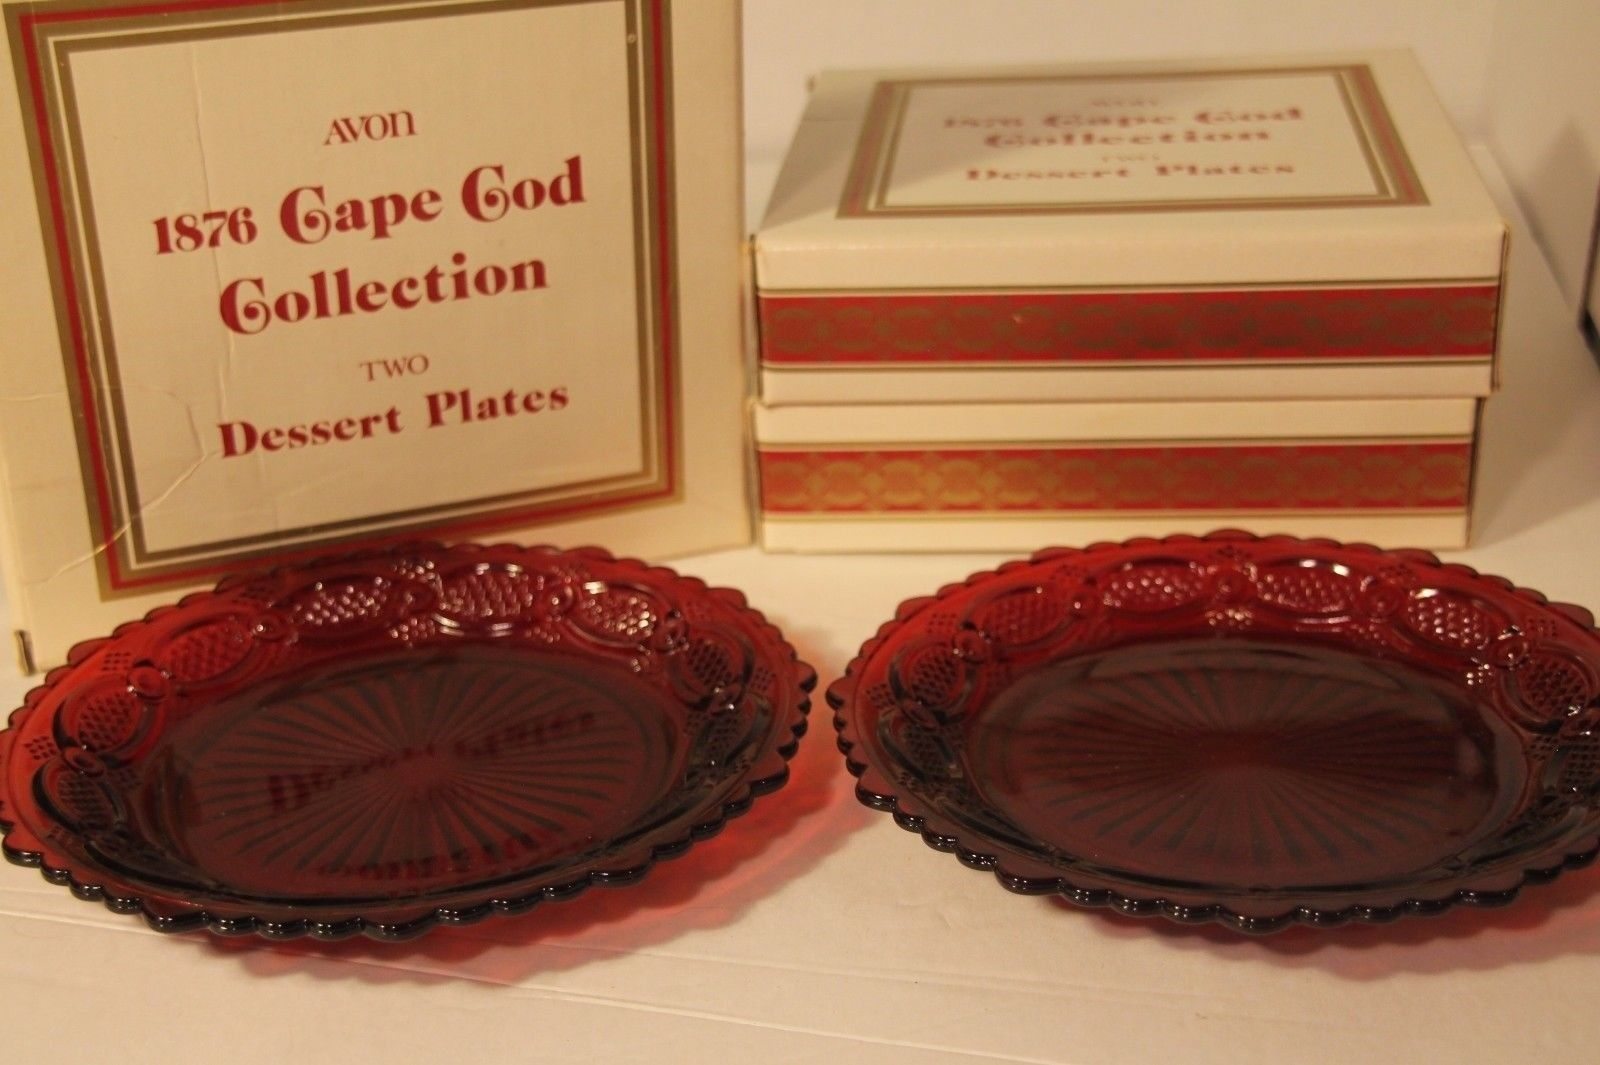 Avon Ruby Red 1876 Cape Cod (6) Dessert Plates 7 1/2 inch With Boxes Vintage